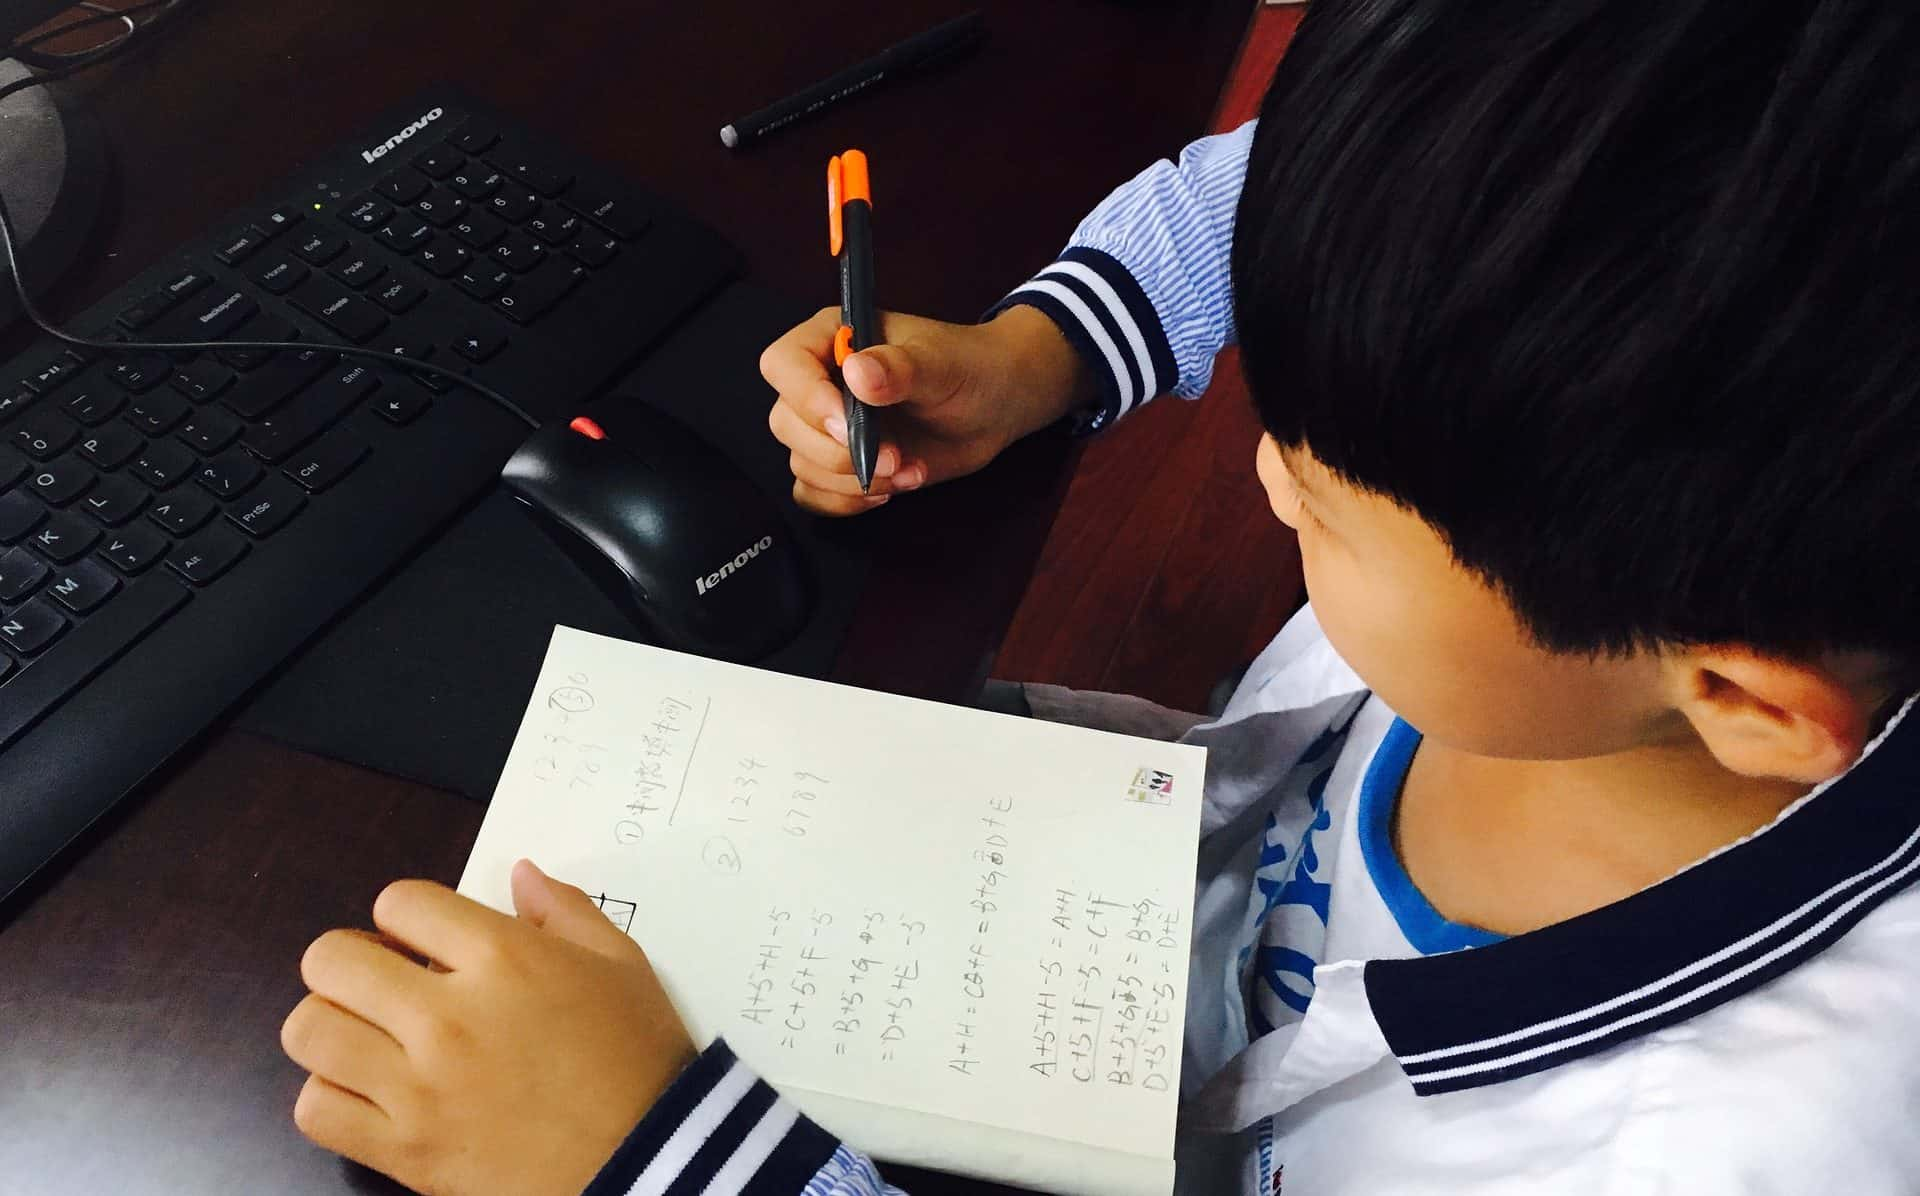 A child writing stuff down on a piece of paper.